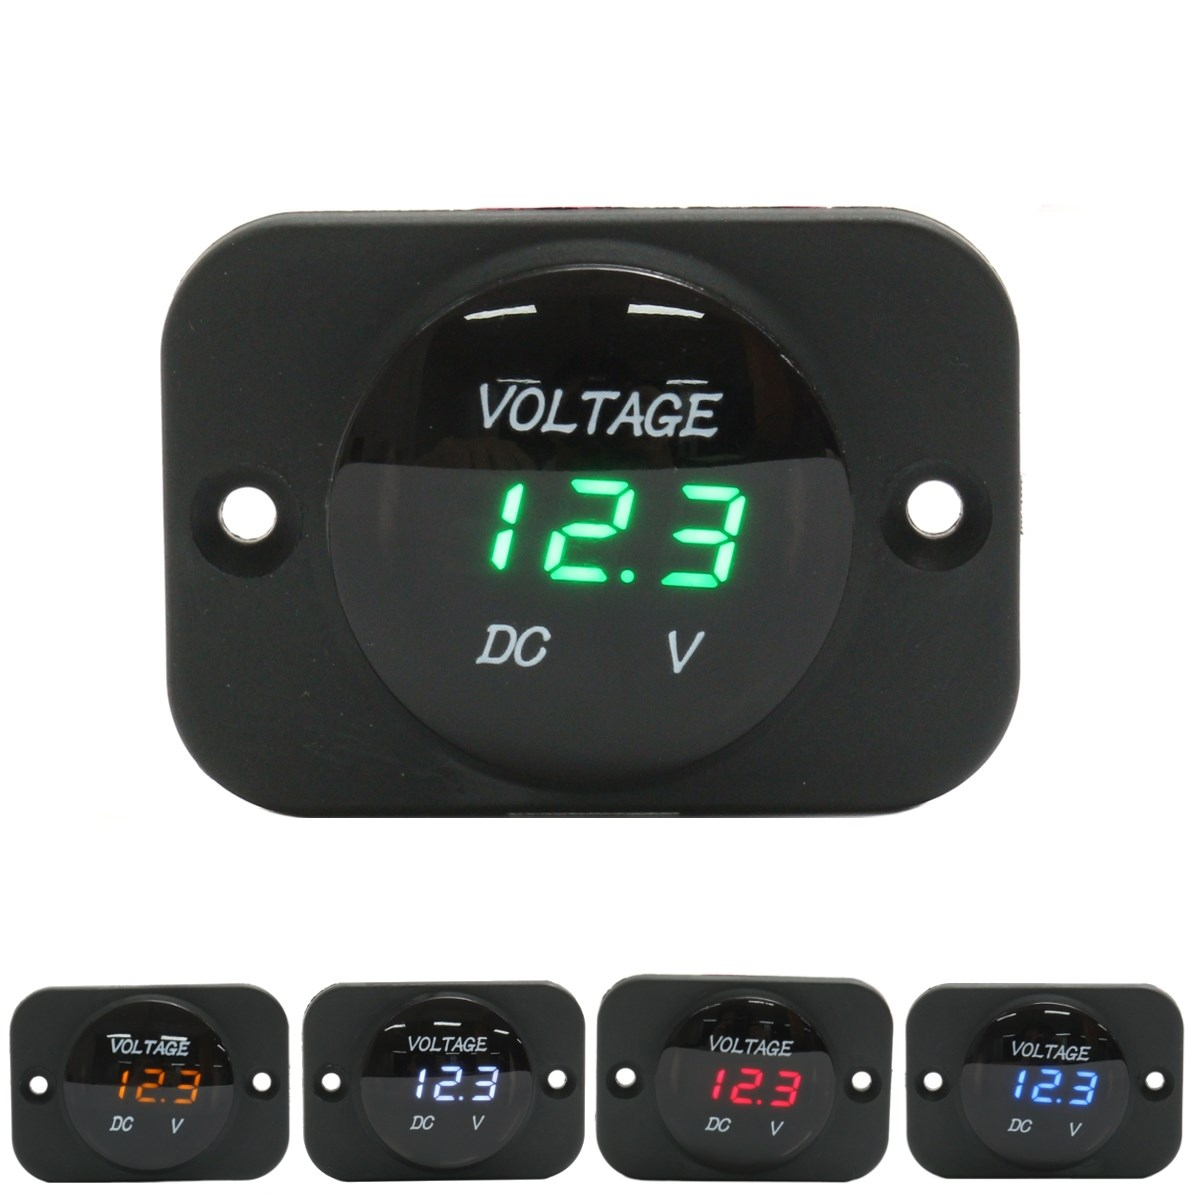 DC 12-24V Waterproof Car Boat Motorcycle LED Voltmeter Digital Display Volt Voltage Meter Gauge Durable Quality свитер детский nike 666232 535 666232 535 891 405